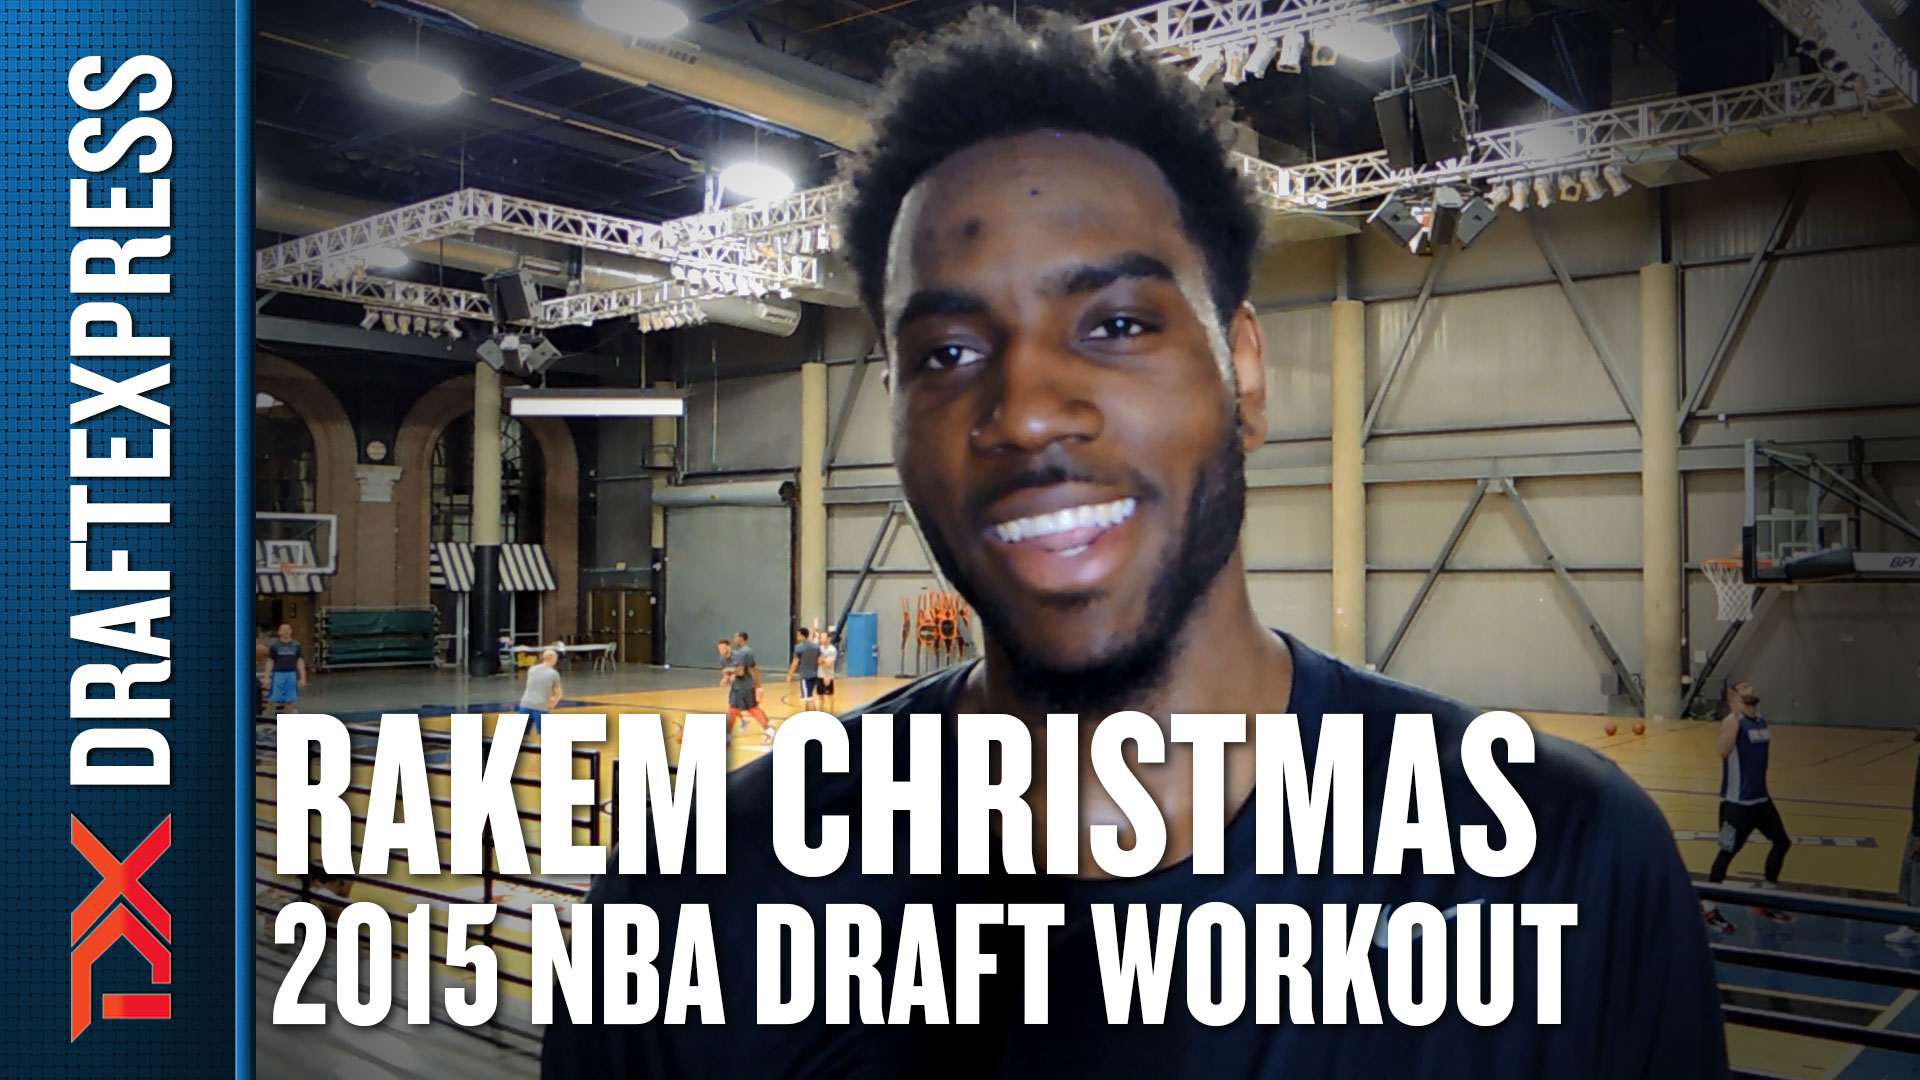 Rakeem Christmas profile